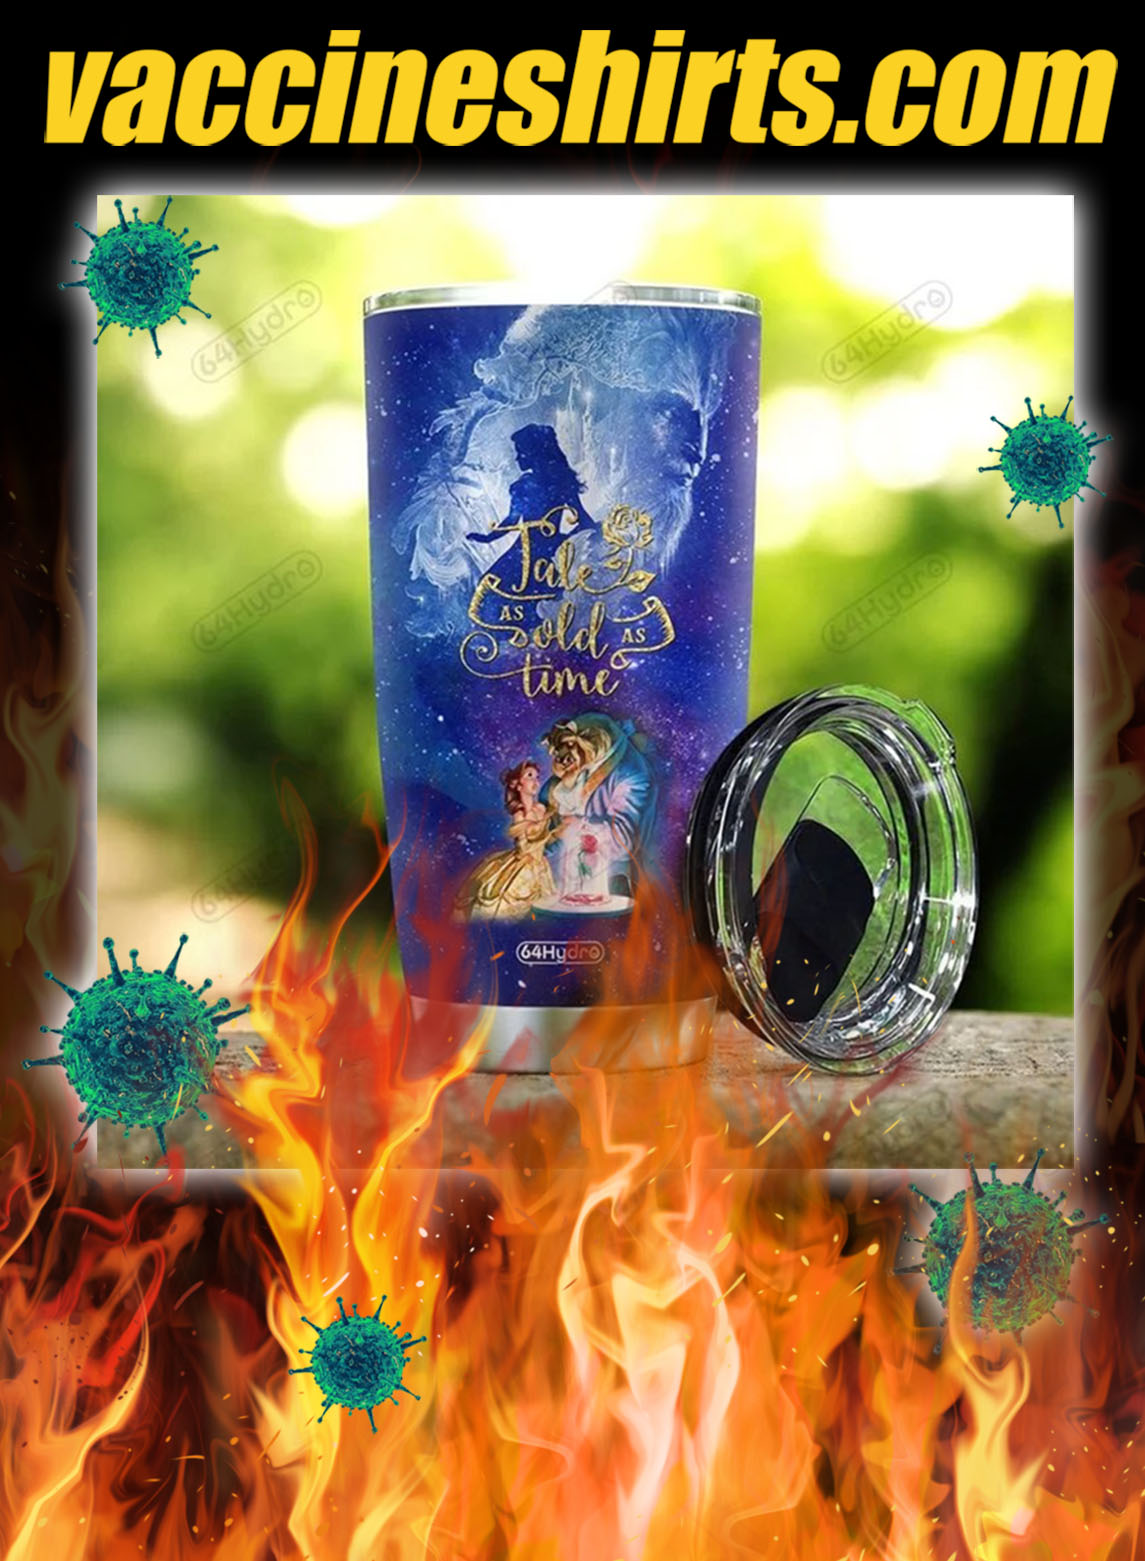 Beauty and the beast stainless steel tumbler- pic 1